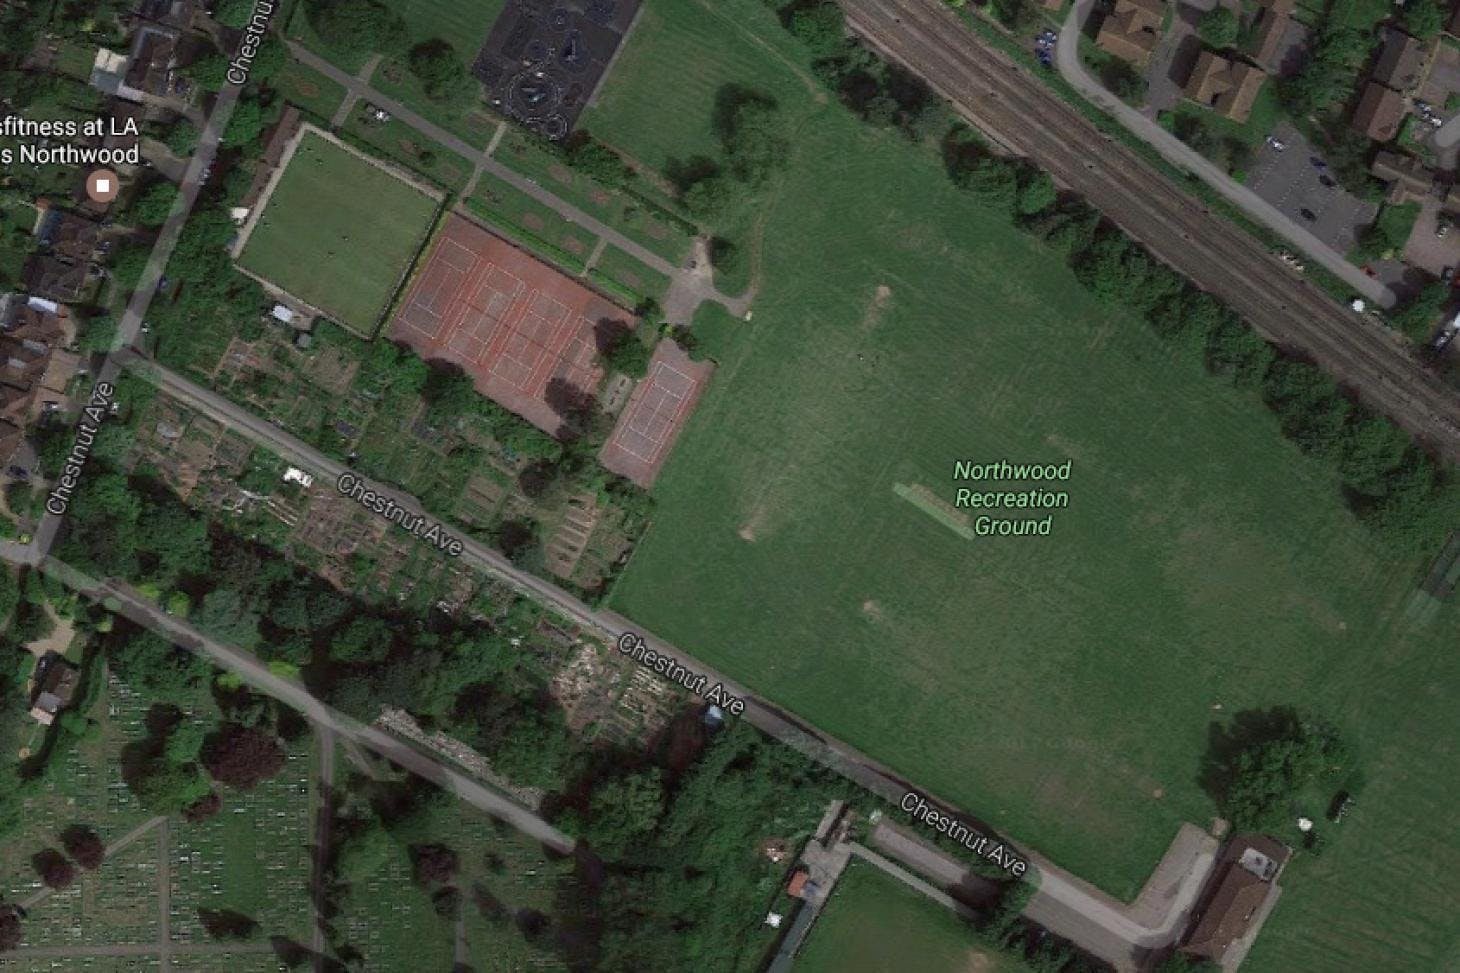 Northwood Recreation Ground 11 a side   Grass football pitch